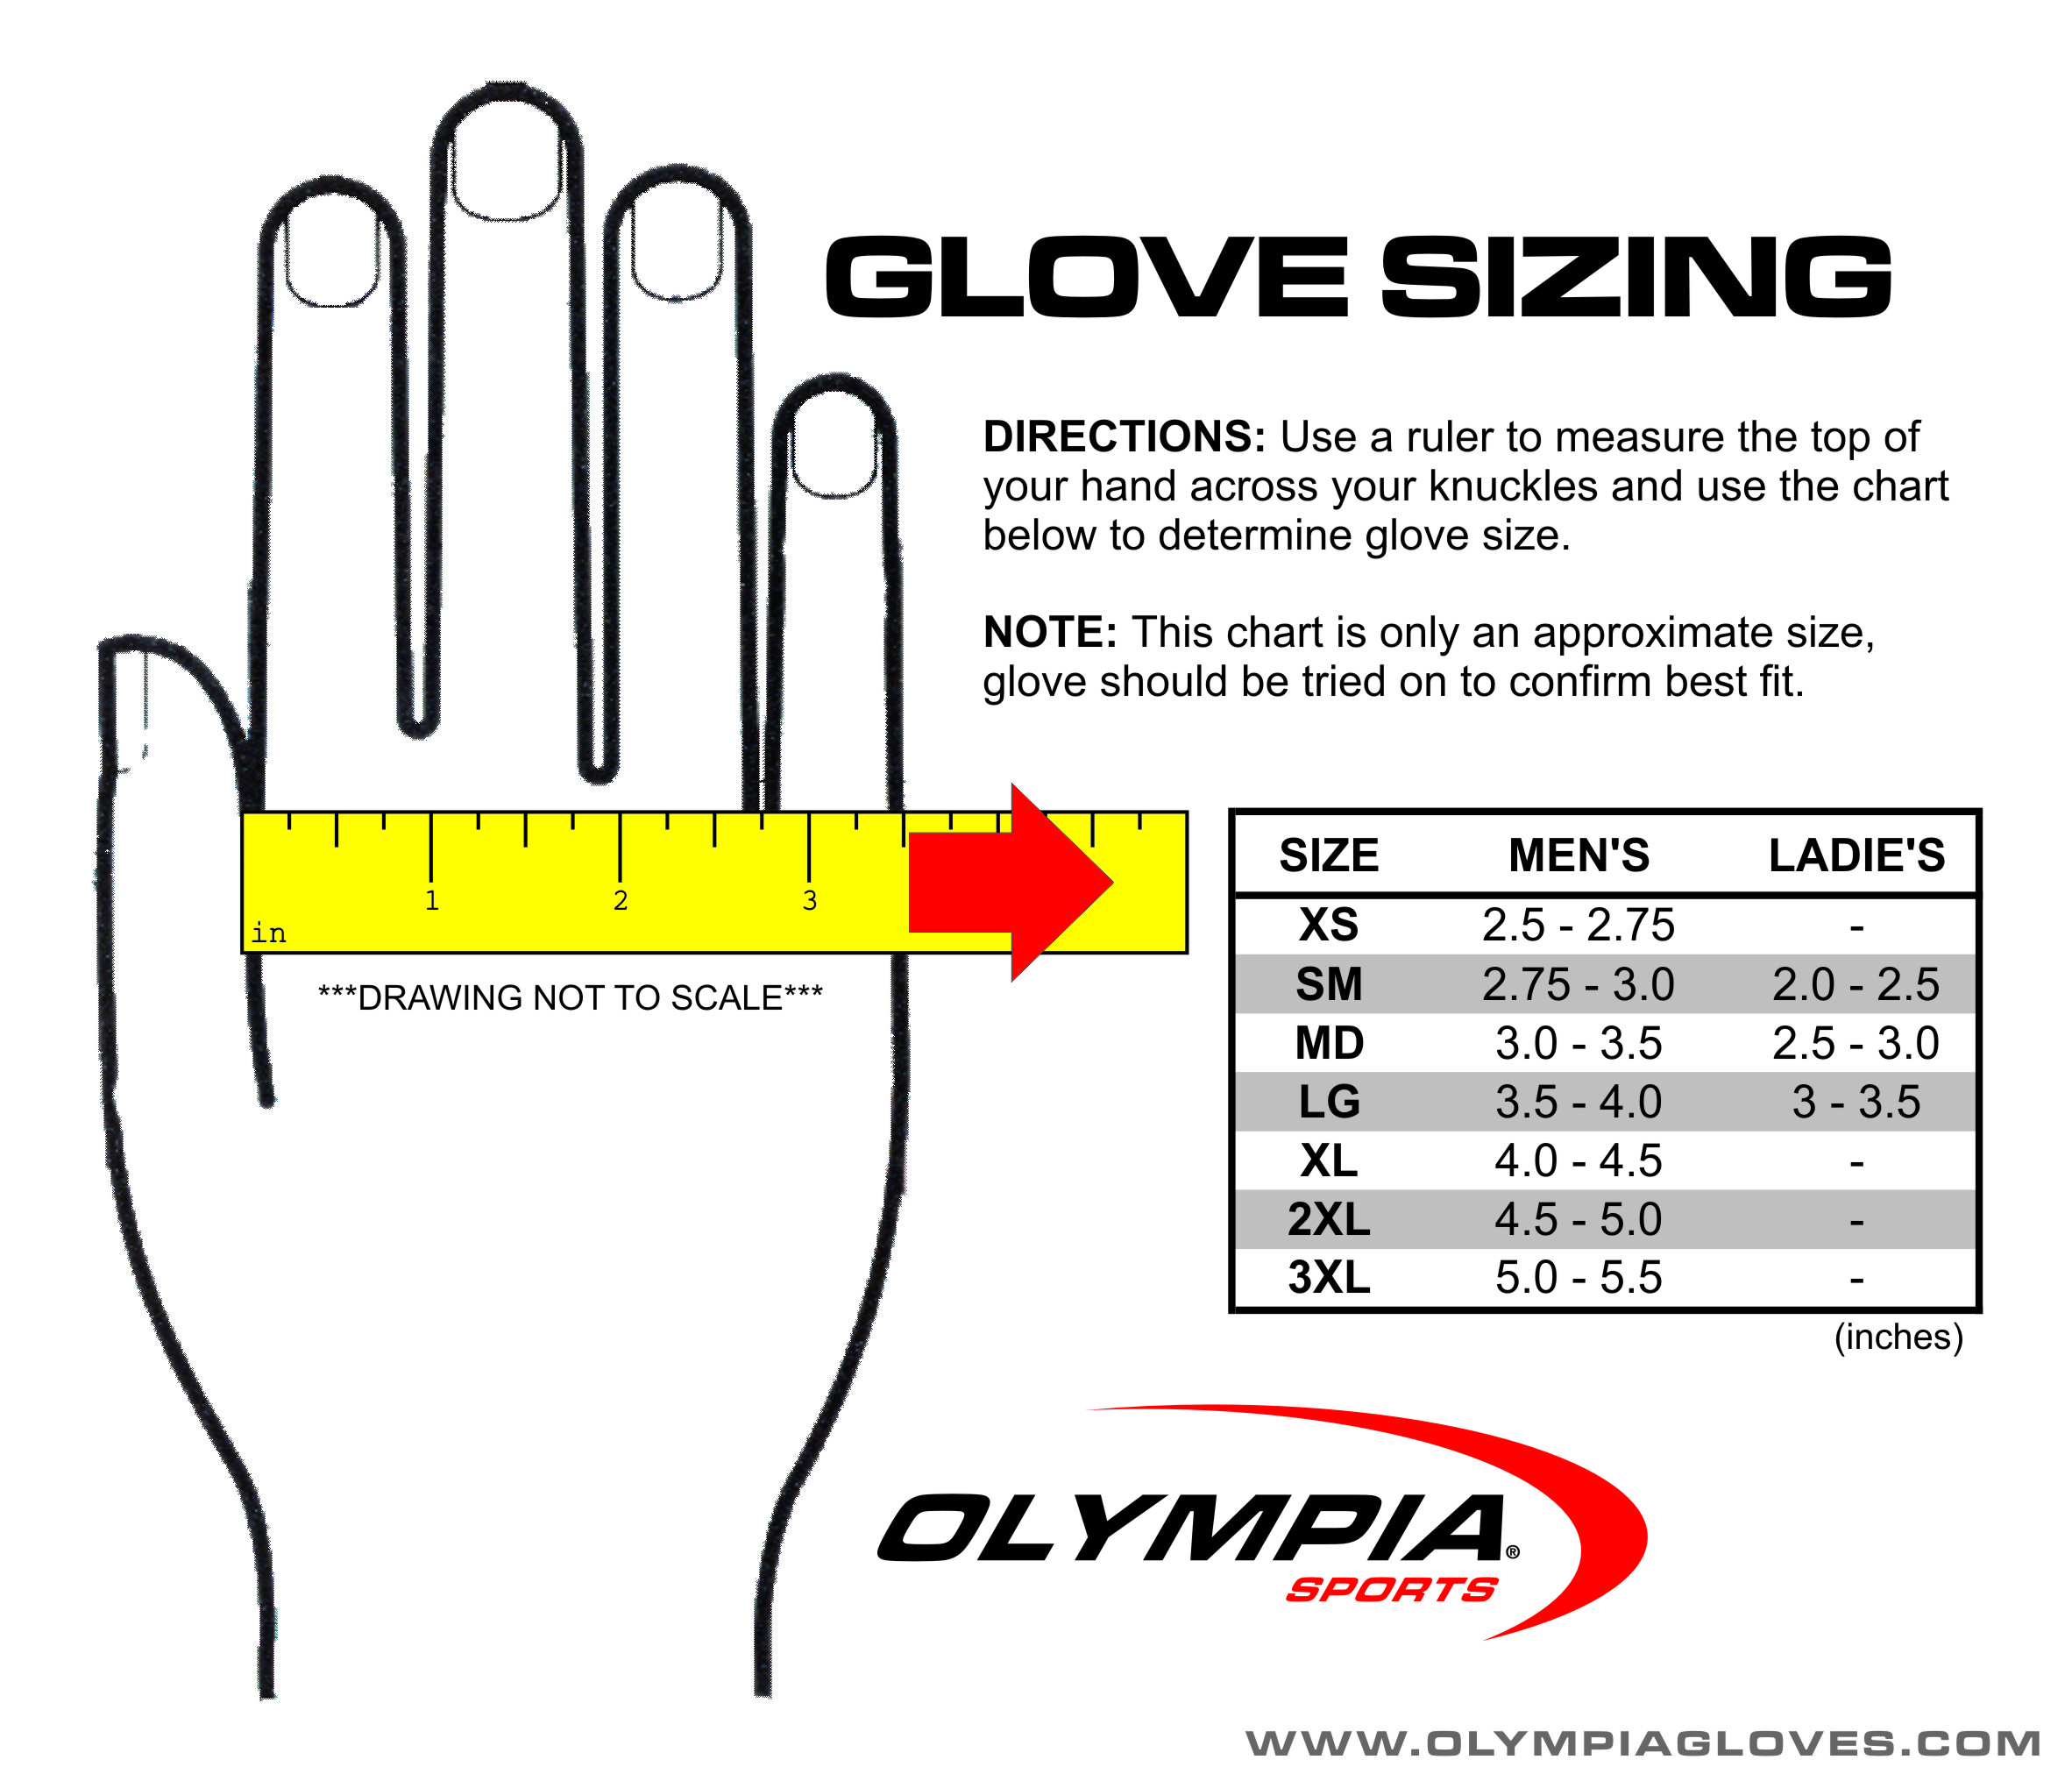 Glove sizes explained